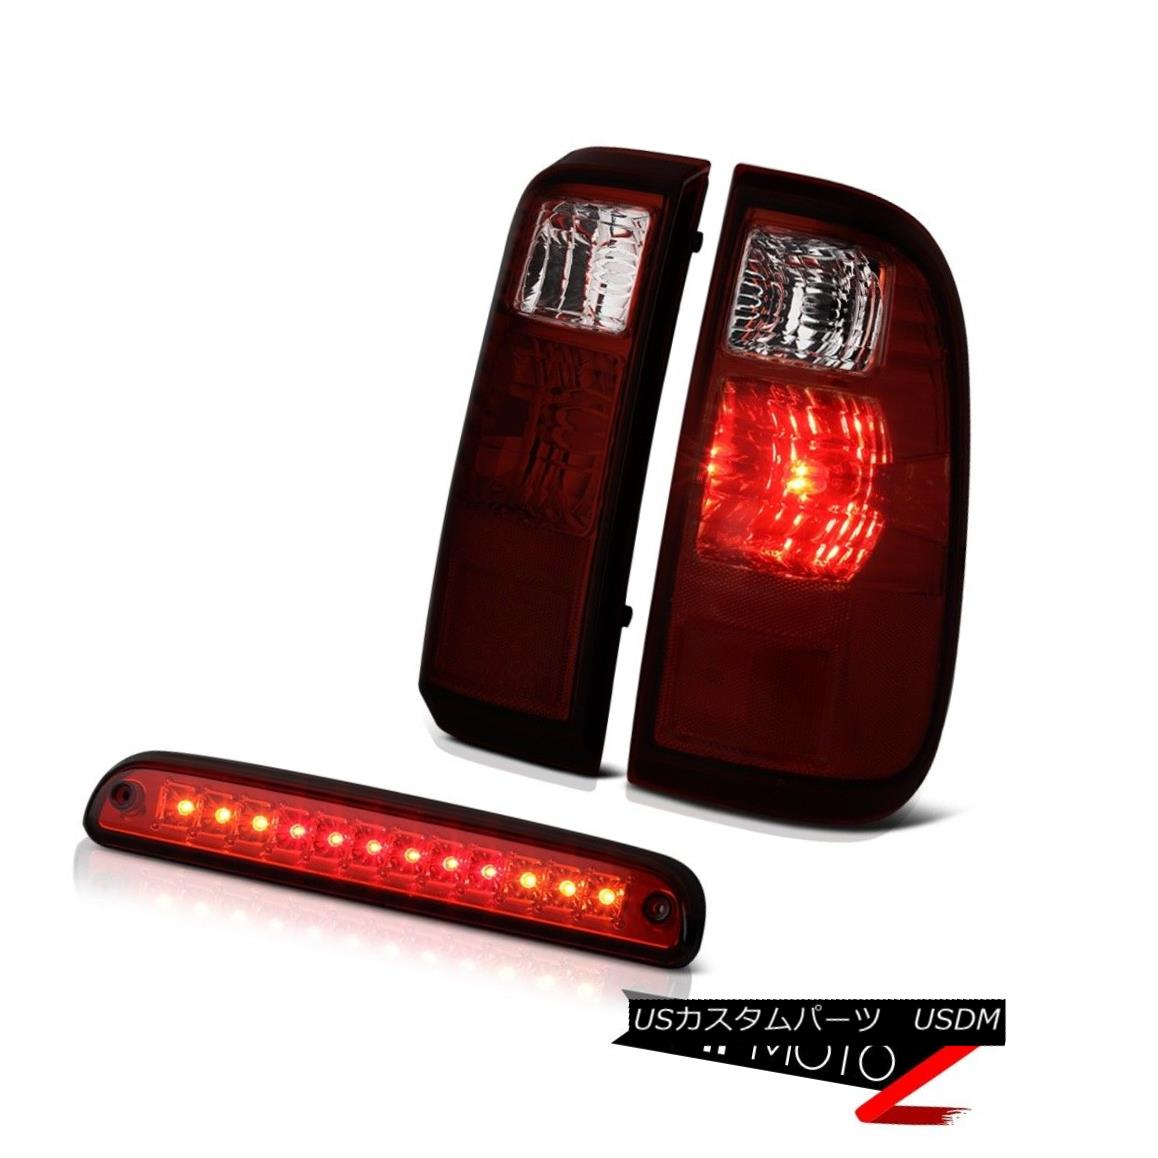 テールライト 2008 2009 2010 Ford F250 F350 SuperDuty Rear Tail Lights Third Brake Cargo Lamps 2008年2009年2010 Ford F250 F350 SuperDutyリアテールライト第3ブレーキカーゴランプ